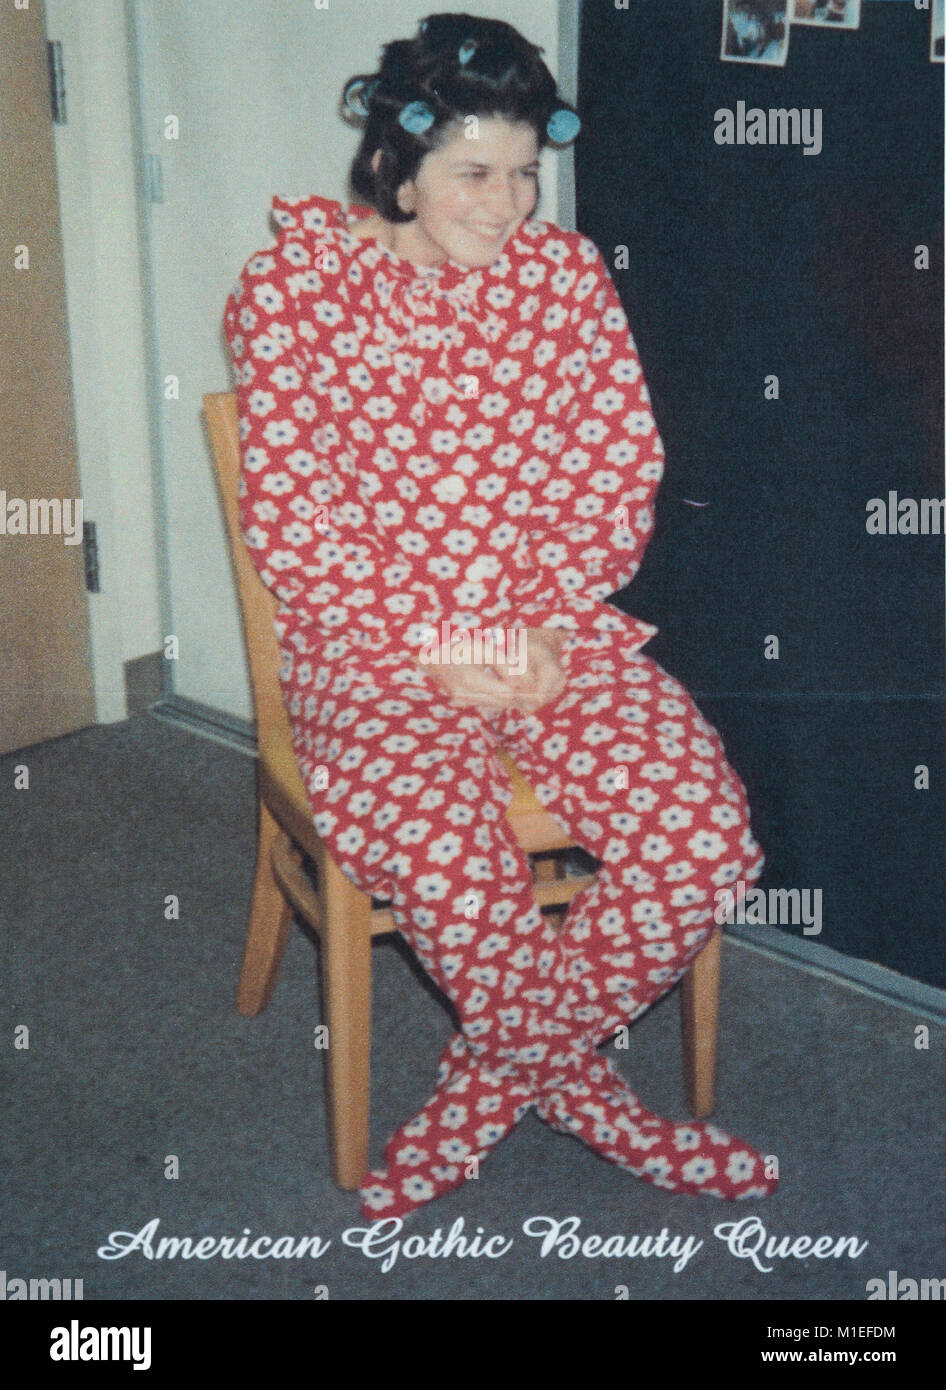 Teenager with Rollers in her Hair Wearing One-Piece Footed Pajamas, USA - Stock Image